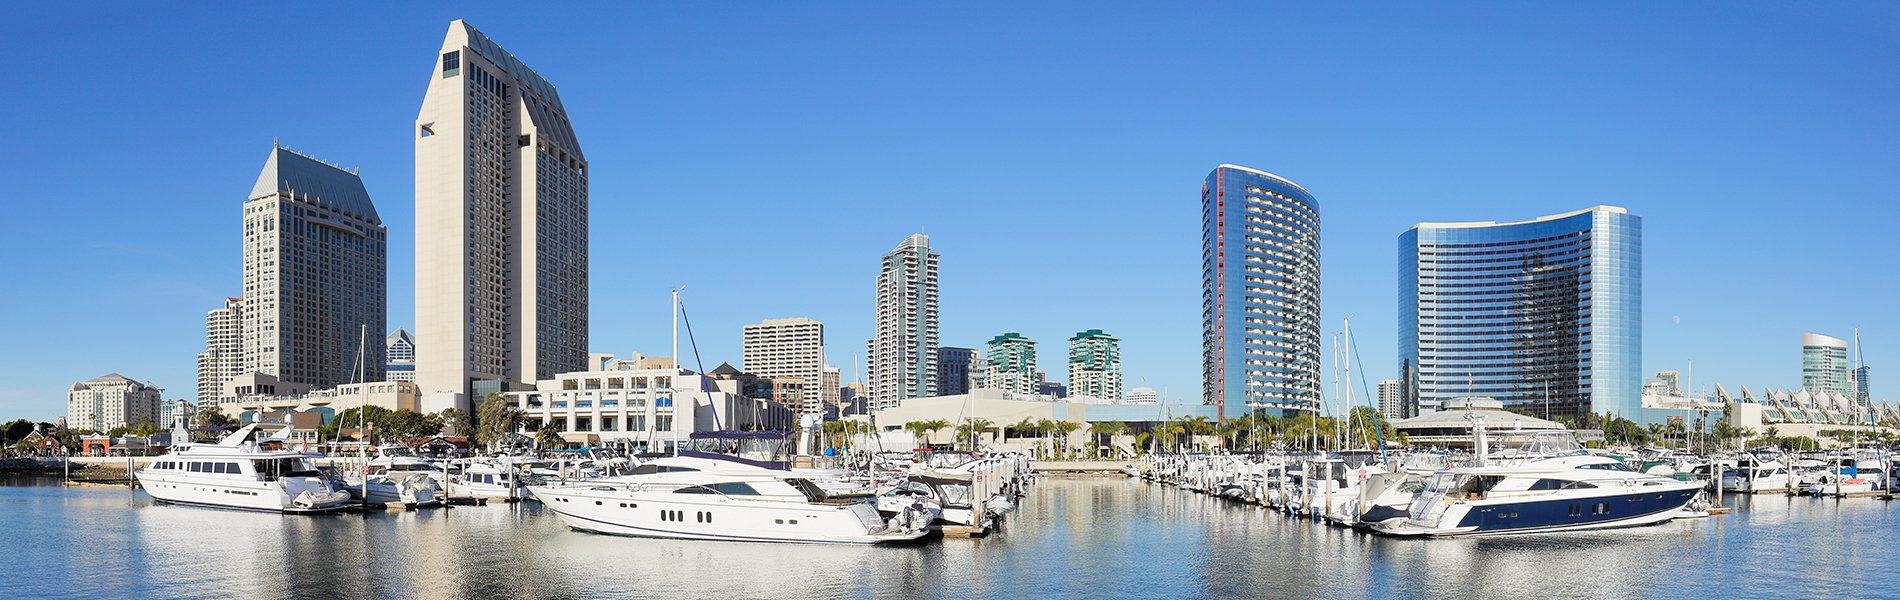 San Diego skyline and boats in harbor